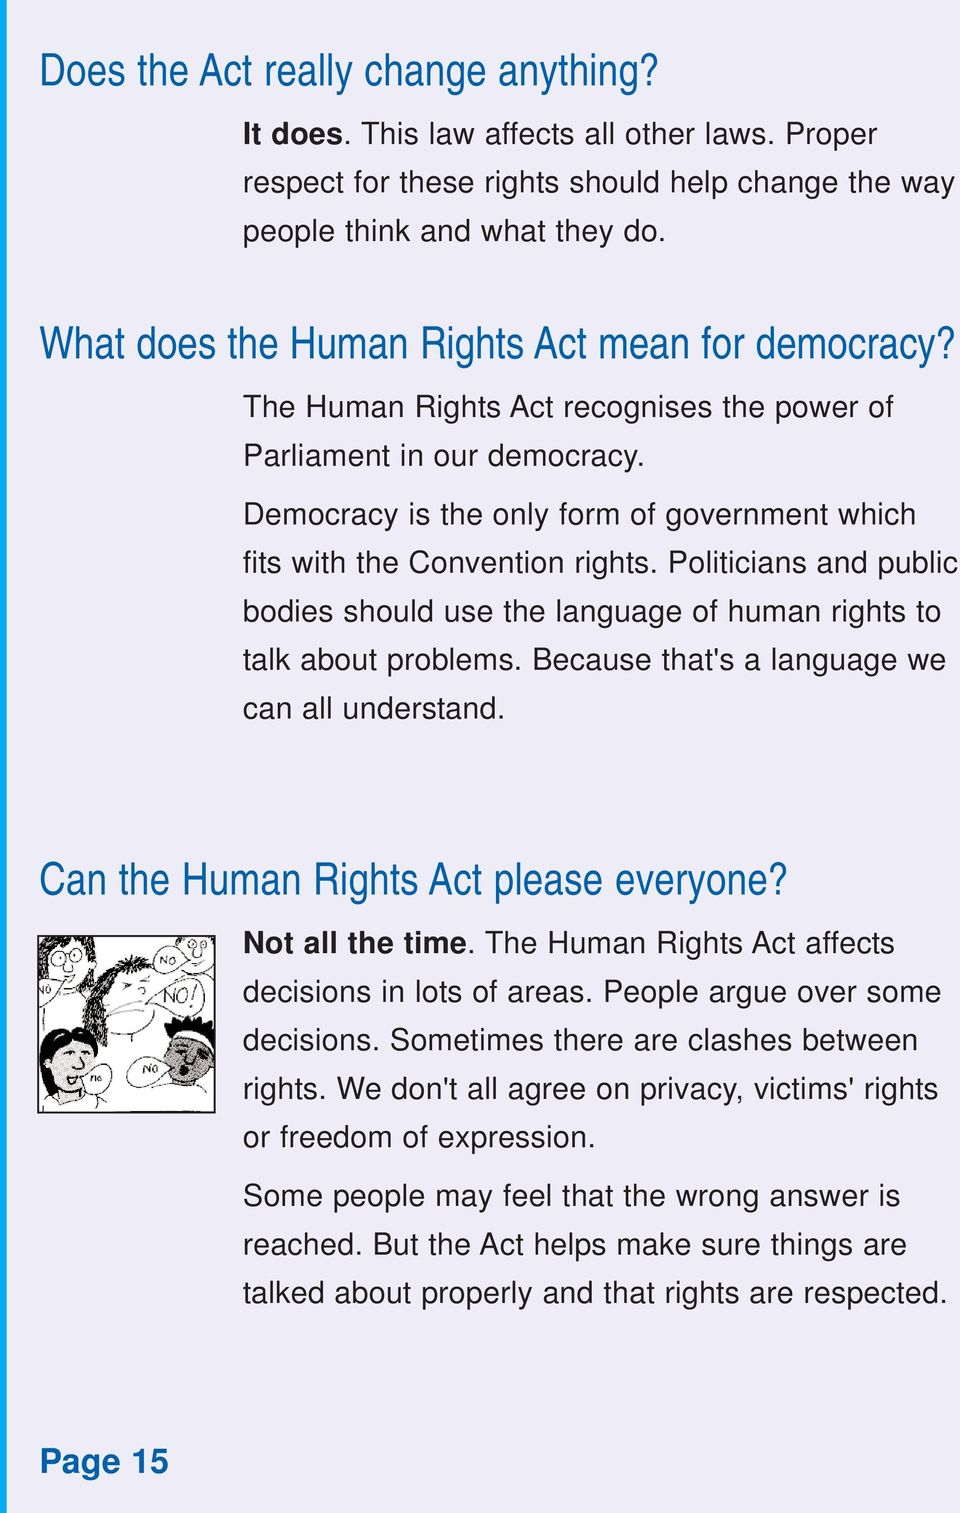 Democracy is the only form of government which fits with the Convention rights. Politicians and public bodies should use the language of human rights to talk about problems.